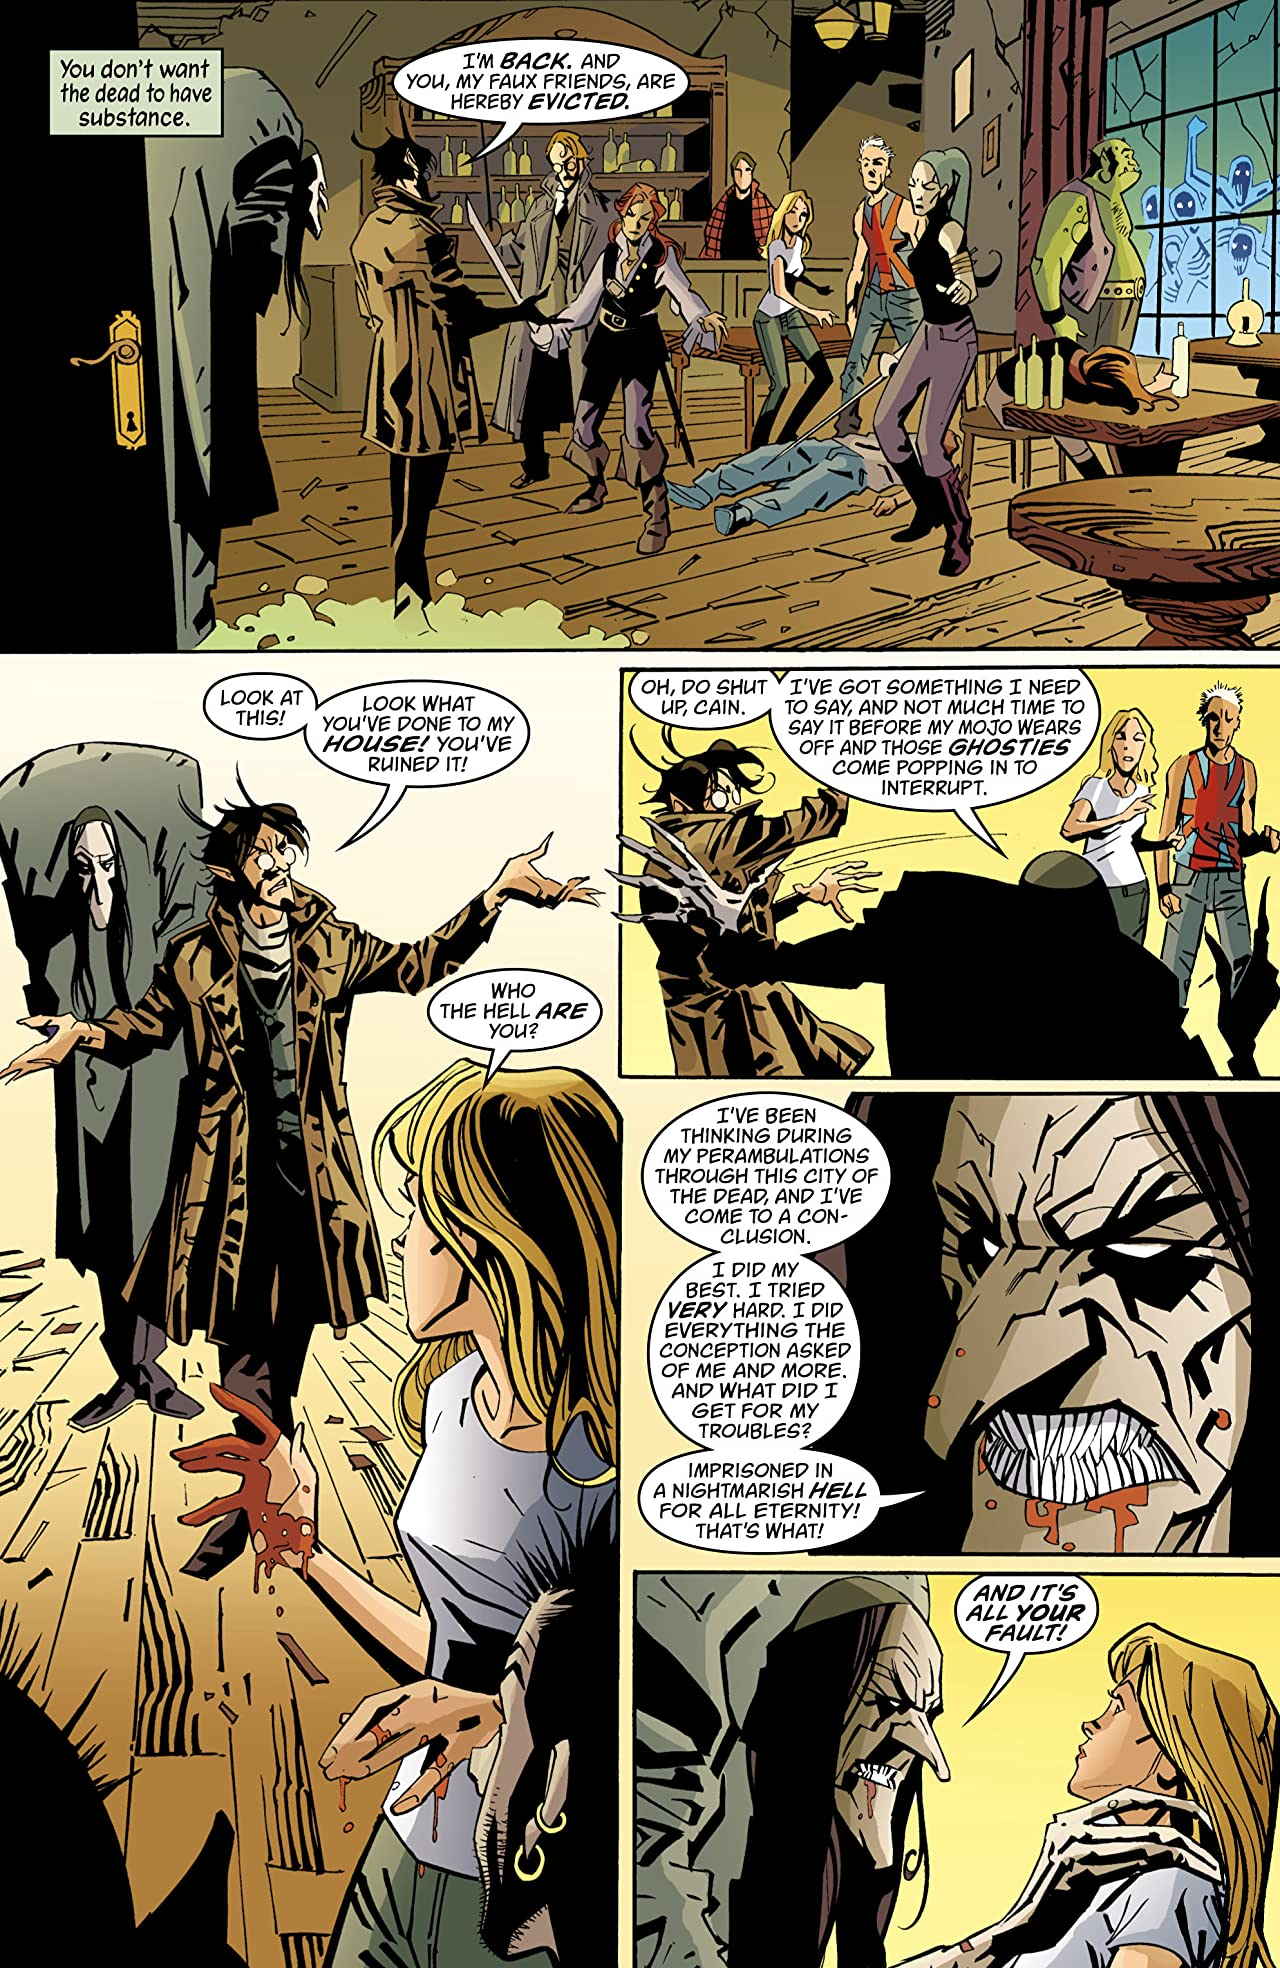 House of Mystery (2008-2011) #20